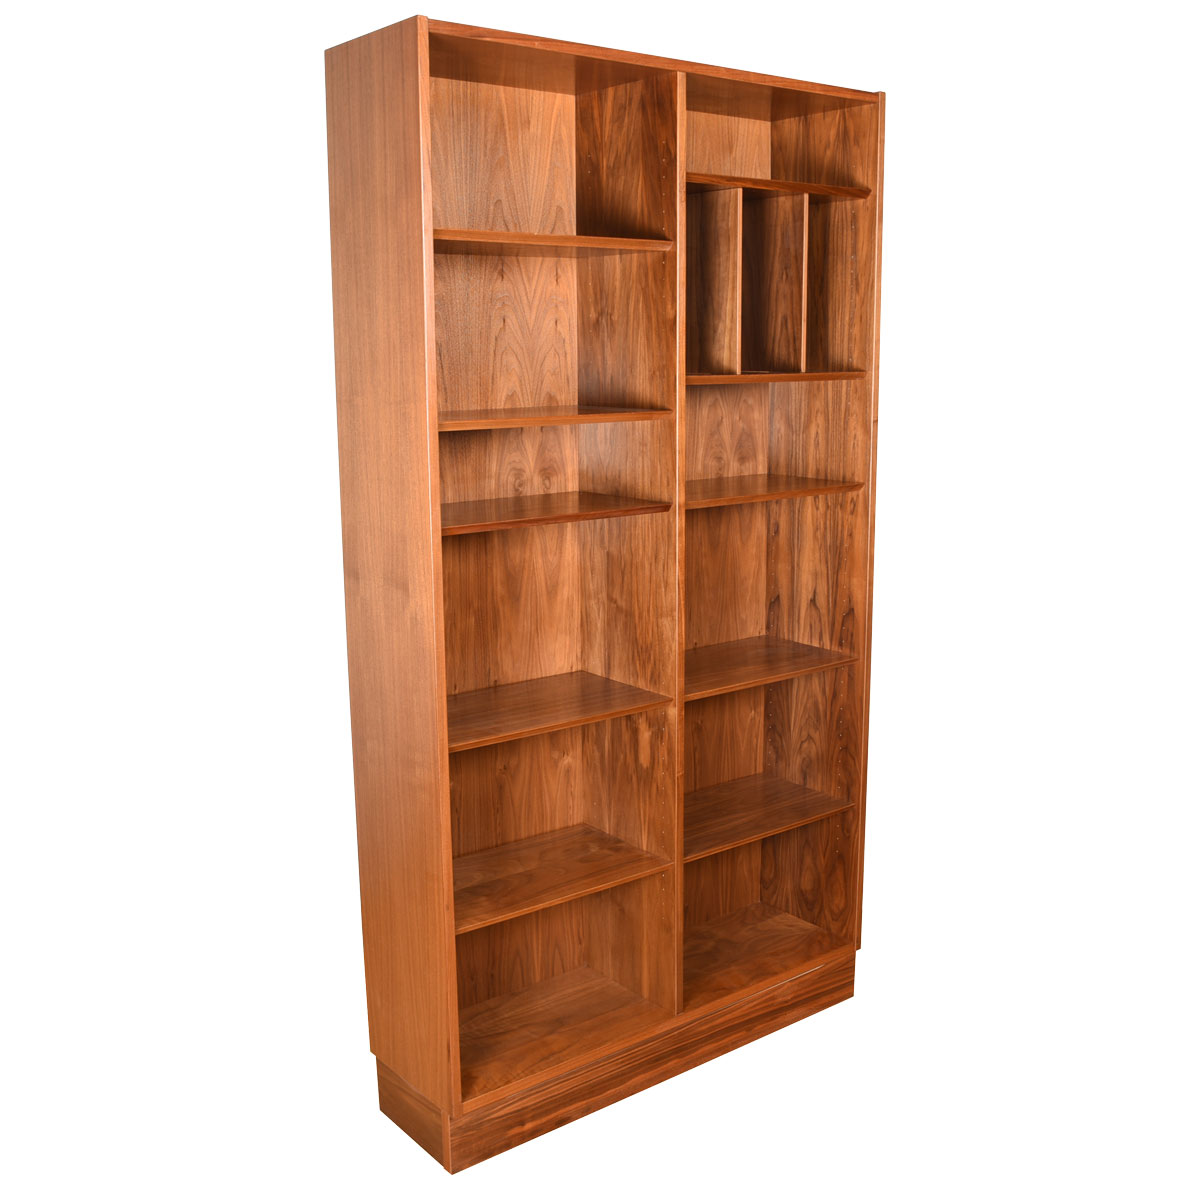 Danish Walnut 42″ Adjustable Tall Bookcase + Magazine / Vinyl Record Dividers